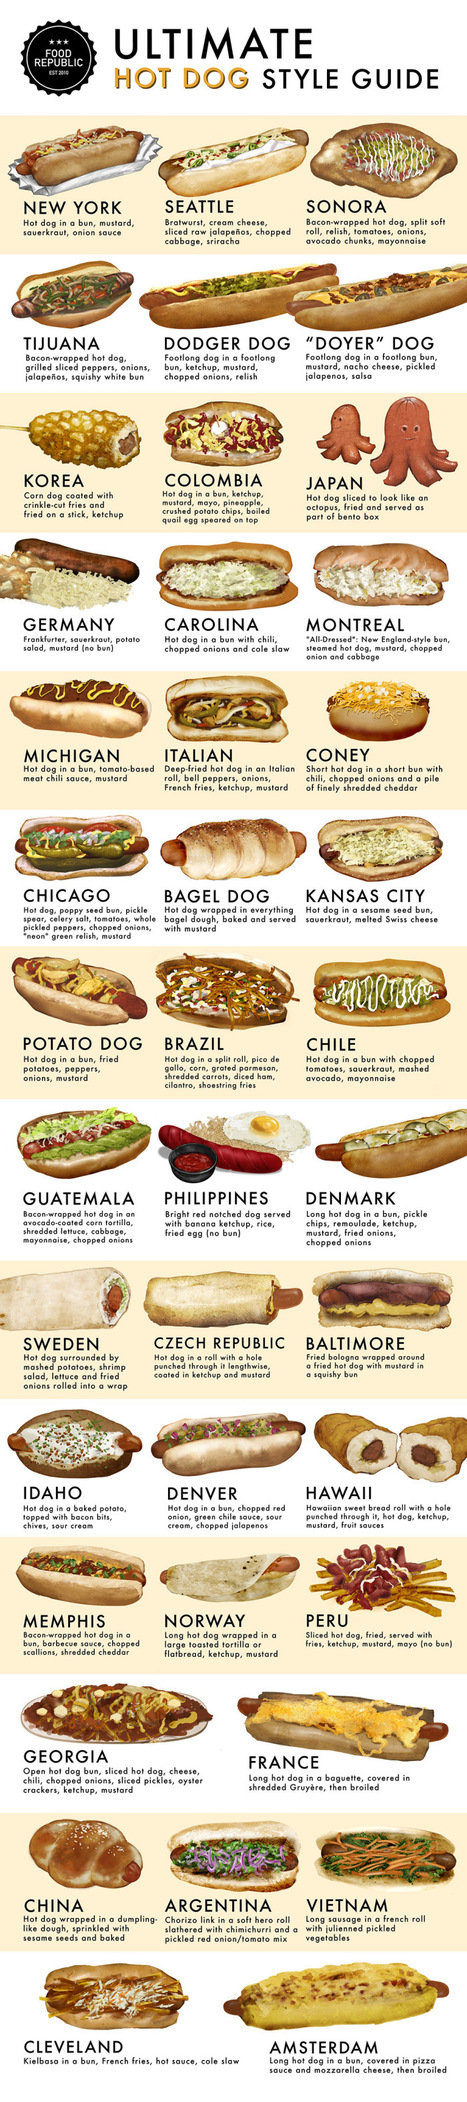 40 Ways The World Makes Awesome Hot Dogs | Mr. Soto's Human Geography | Scoop.it